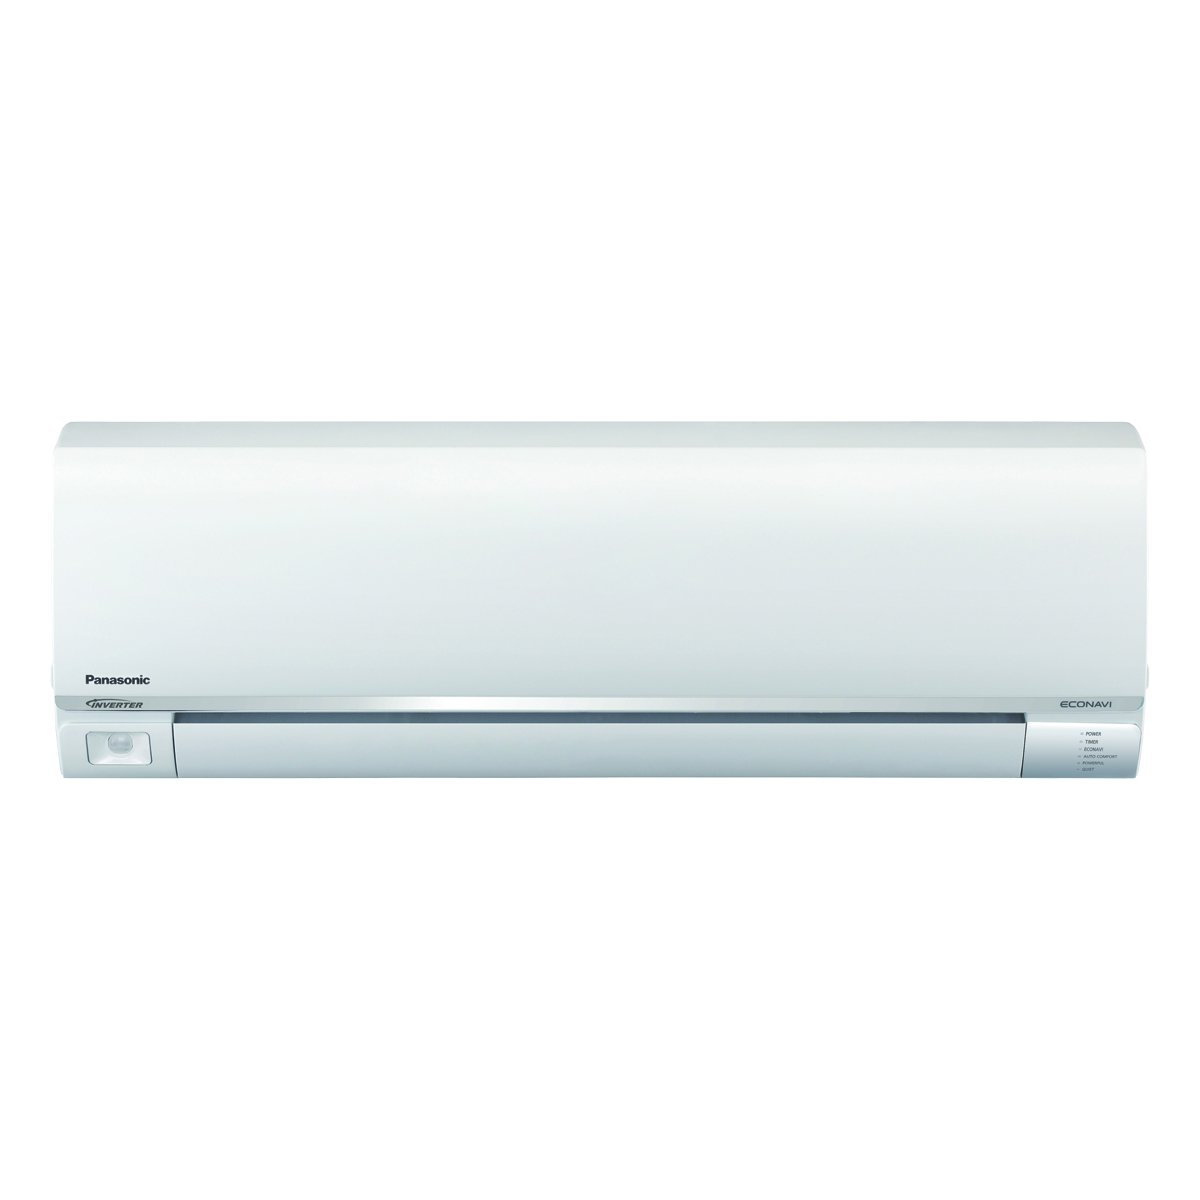 Panasonic CS-E12RKUAW Deluxe Series 11,500 BTU Indoor Wall Mounted Heat Pump (Must be Paired with Outdoor Unit)